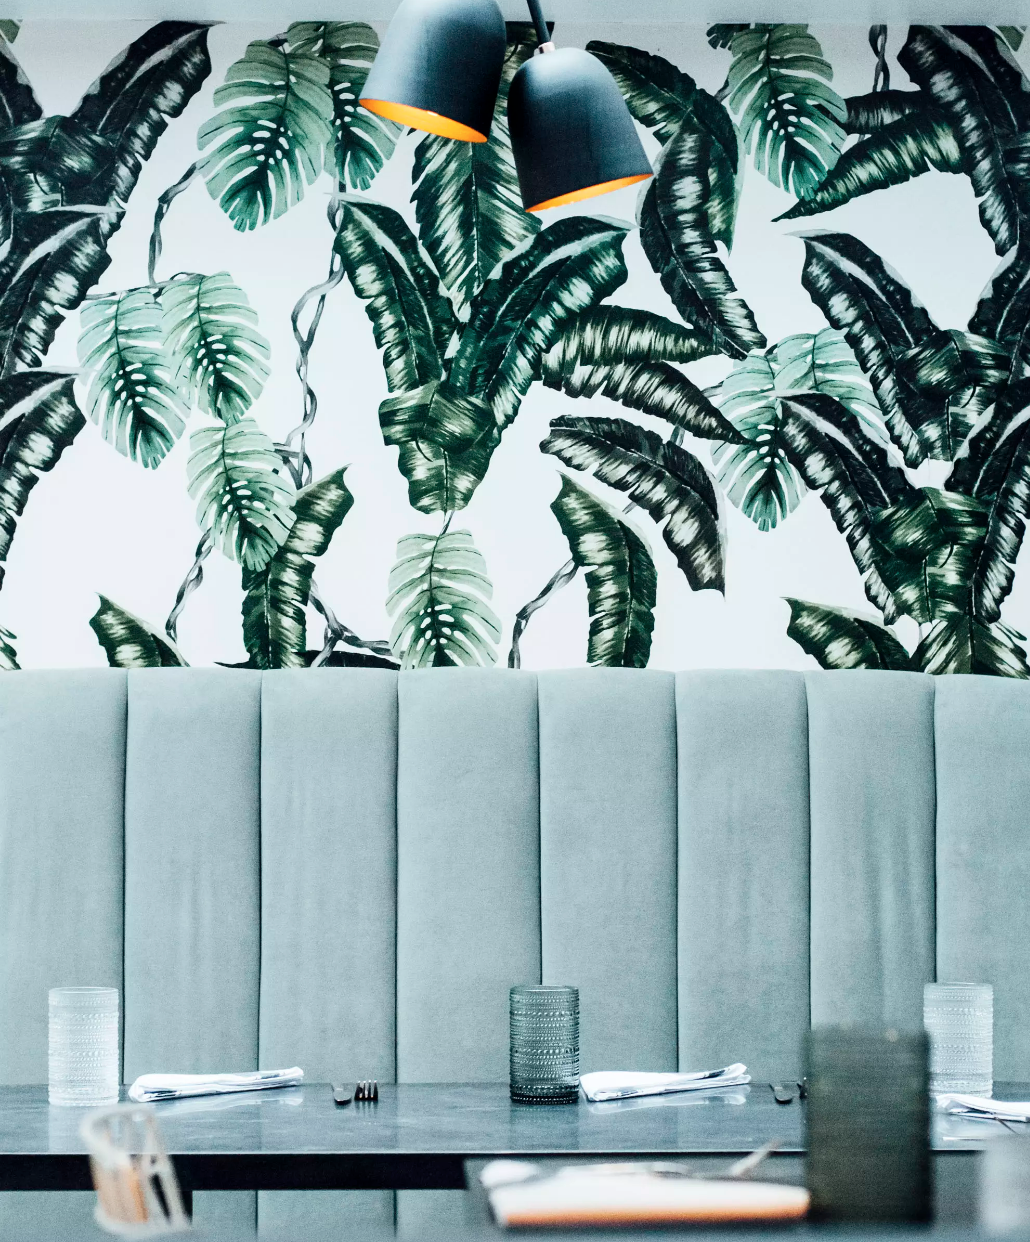 Custom, Wallpaper, local artists, made-to-order art, planta restaurant, banana leaf wallpaper